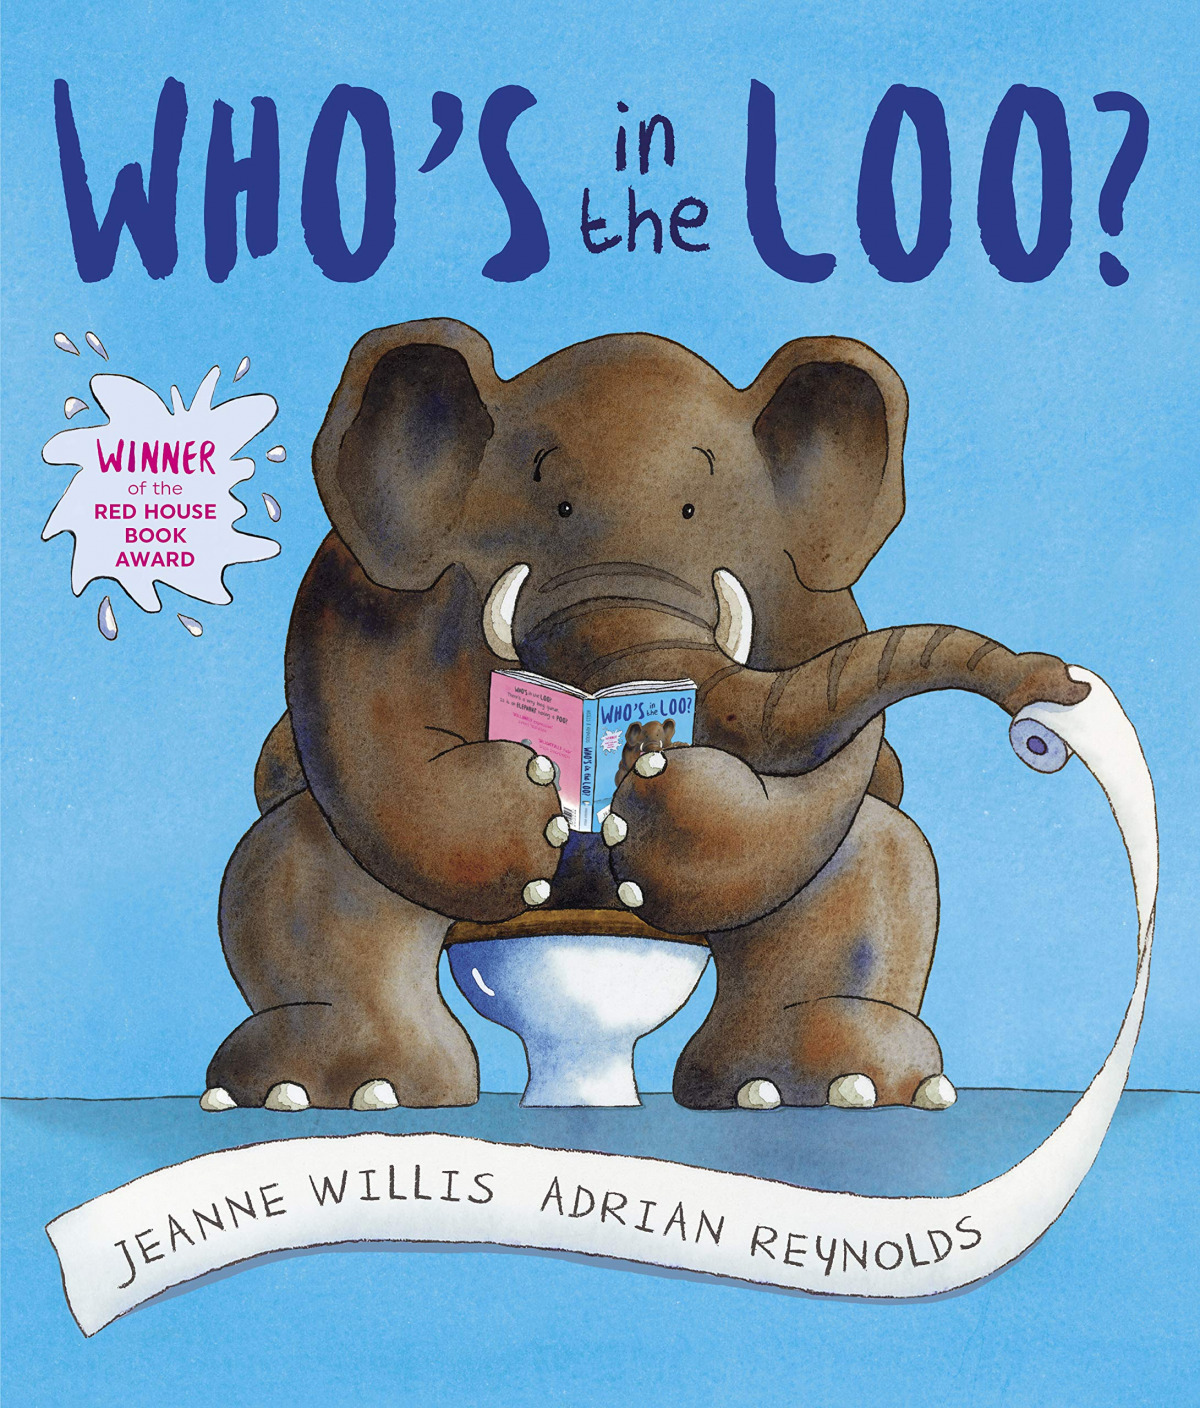 (willis).who´s in the loo?